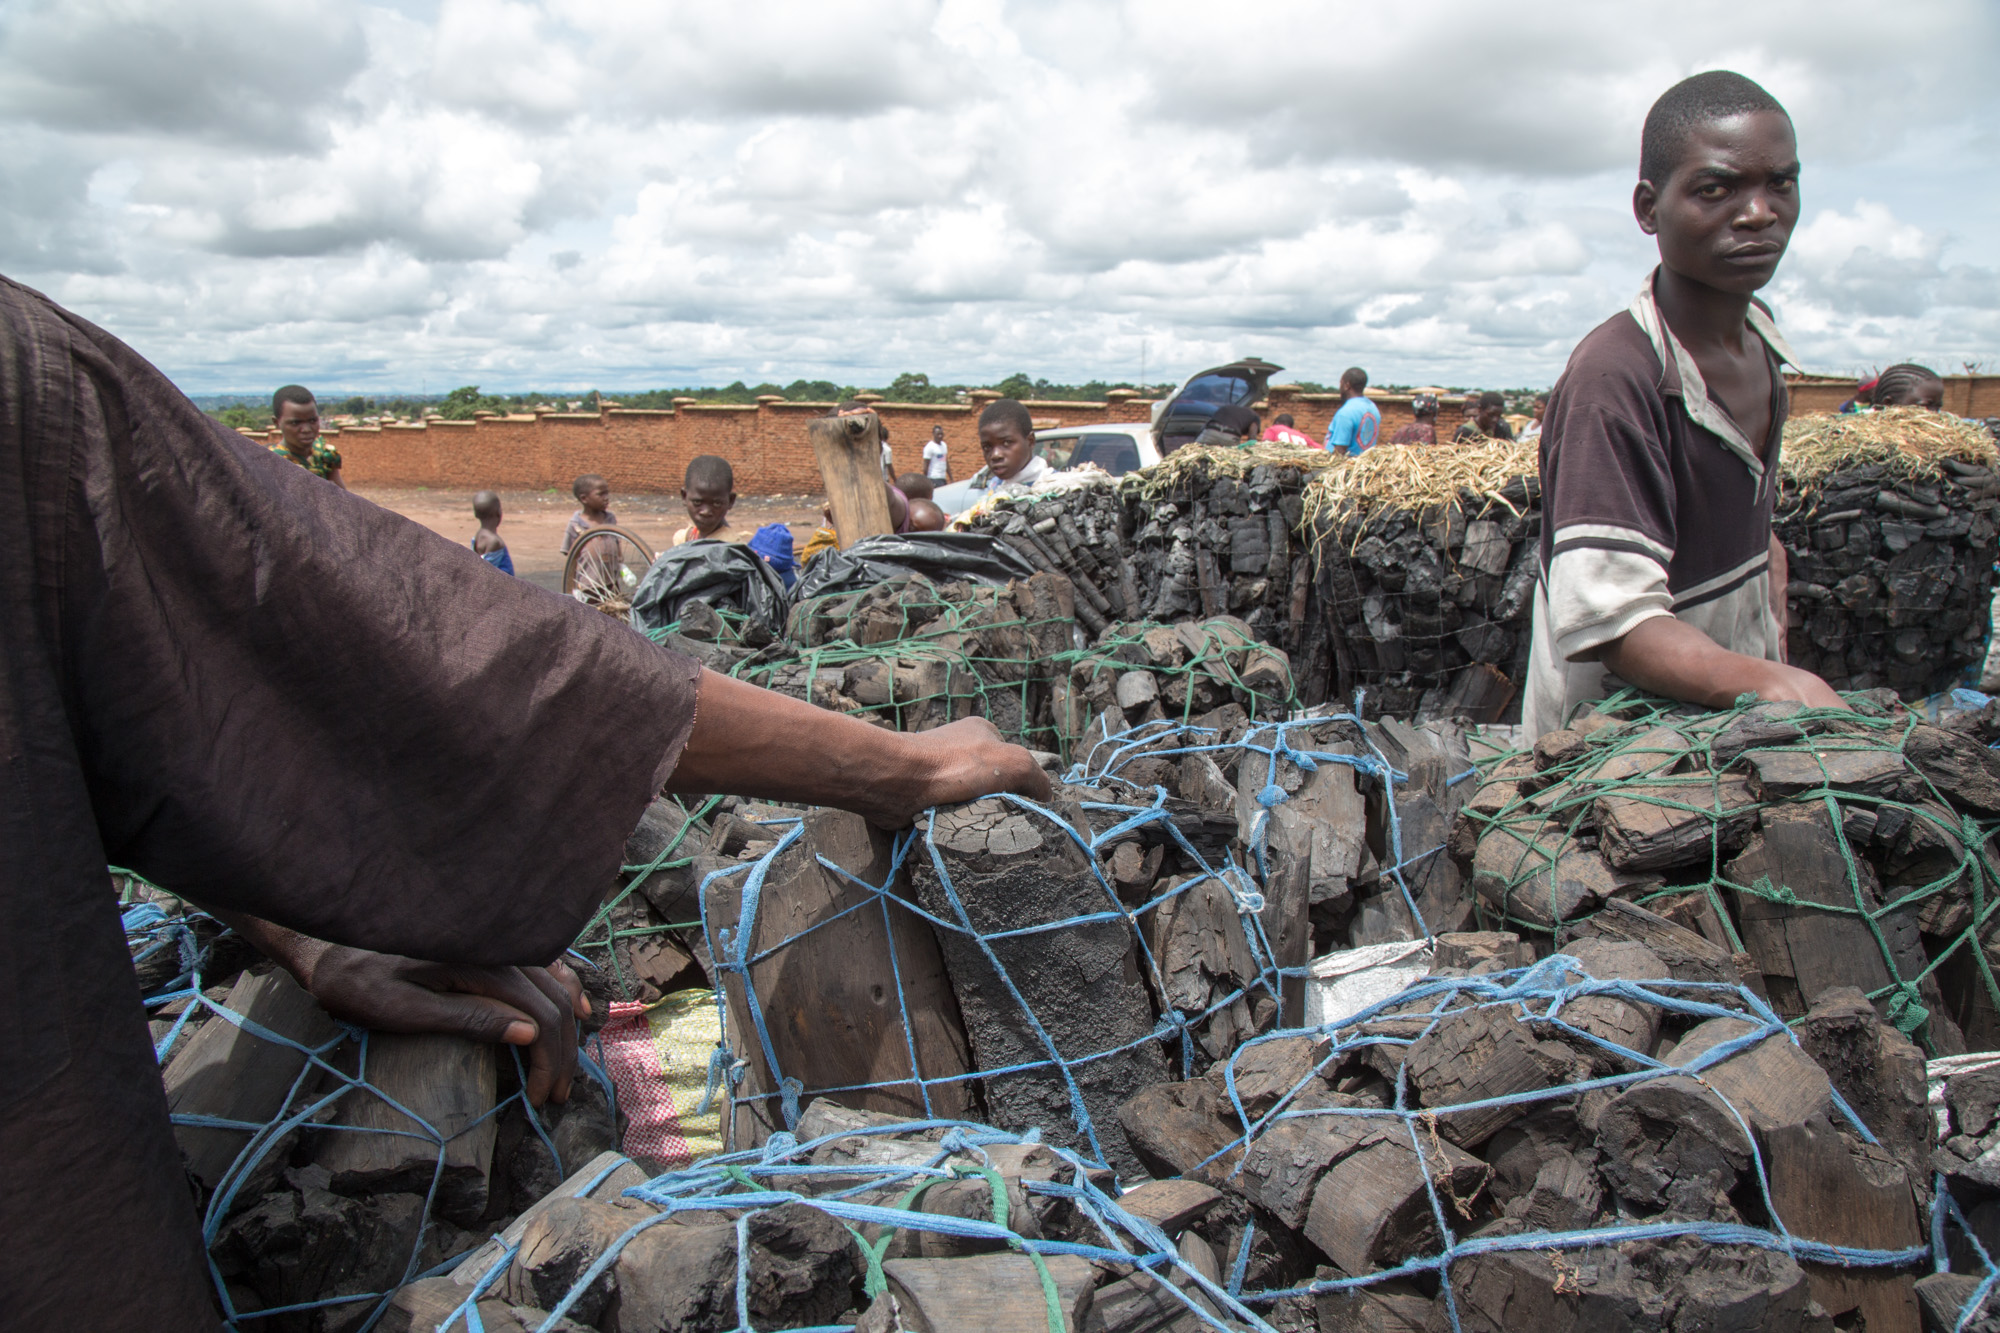 On the Mgona charcoal market in Lilongwe